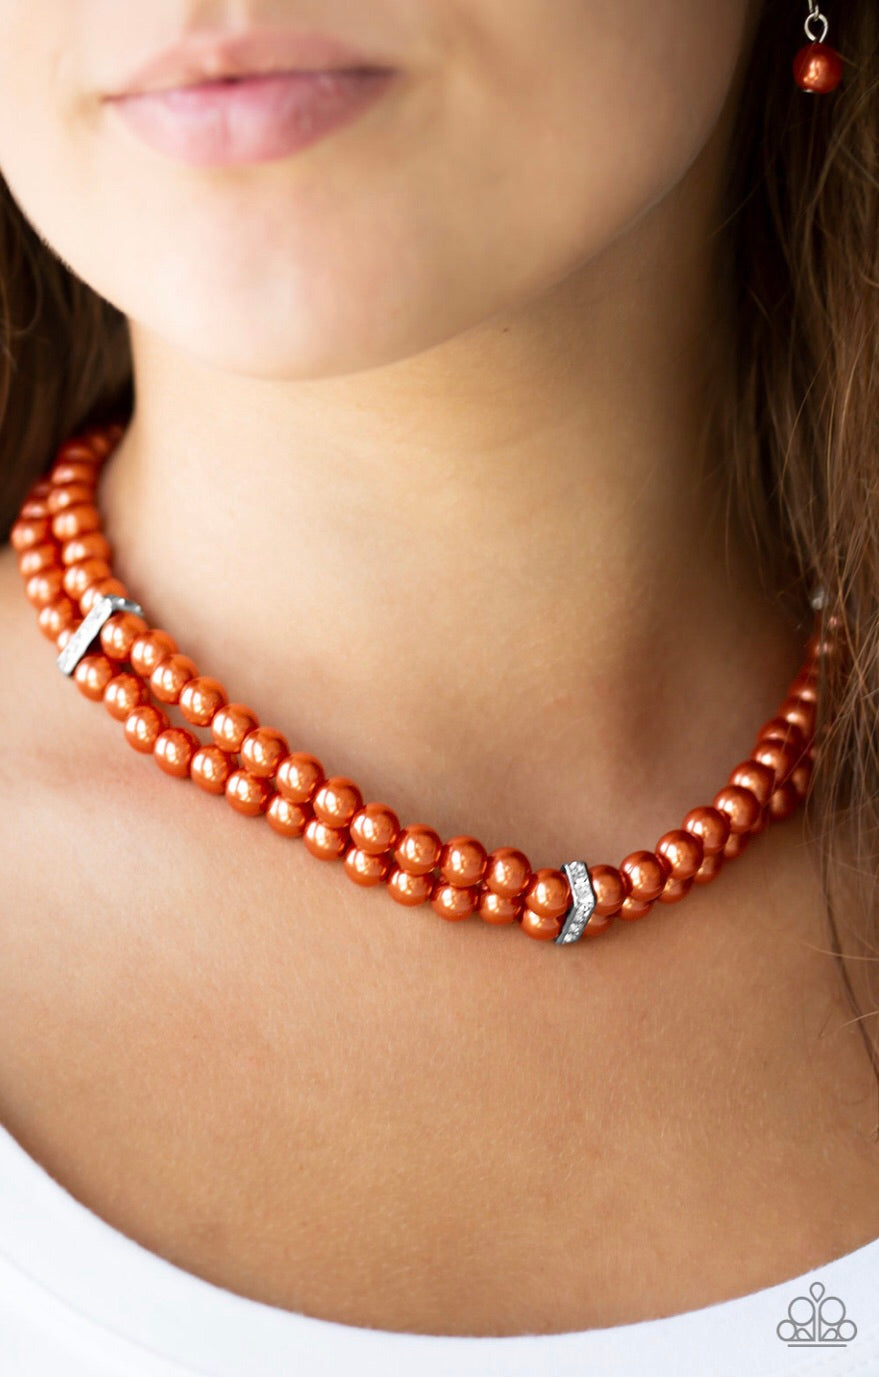 Put On Your Party Dress - Orange Pearl Paparazzi Jewelry Necklace paparazzi accessories jewelry Necklaces